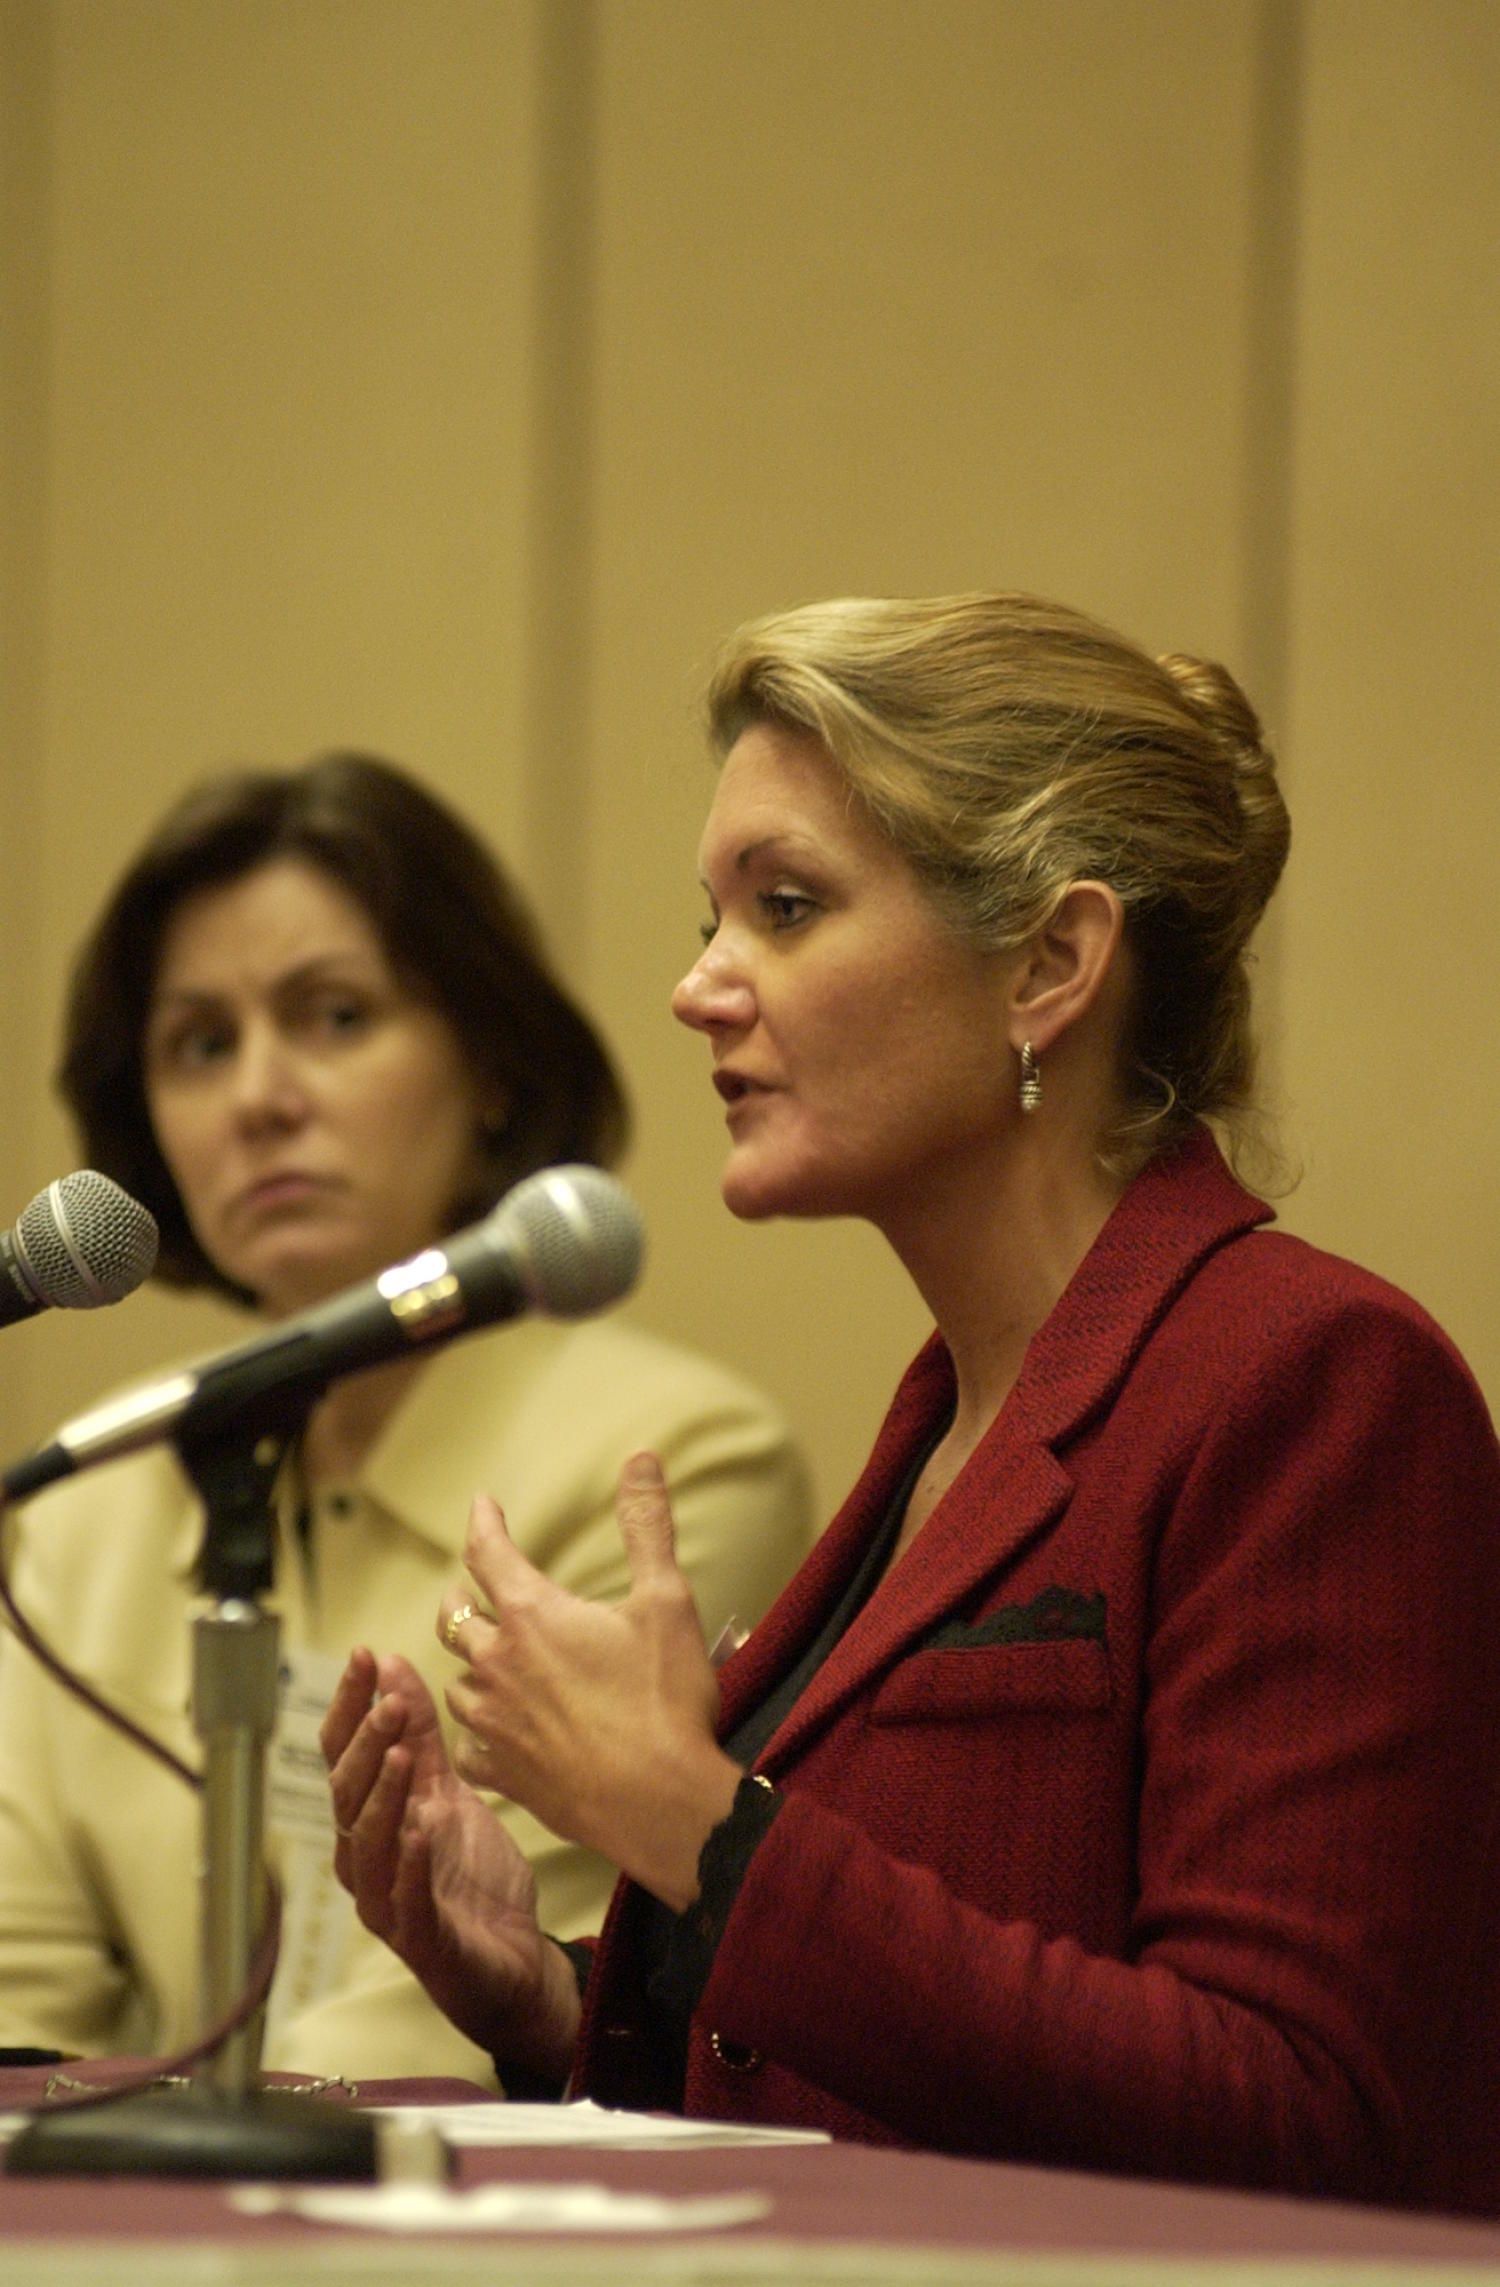 [Rebecca Baldwin at TDNA conference], Photograph of Rebecca Baldwin (left) and an unidentified woman in red, guest speakers attending the 2004 Texas Daily News Association annual conference held in Corpus Christi. The woman in red is leaning forward to speak directly into the microphone and using her hands as emphasis as she speaks.,